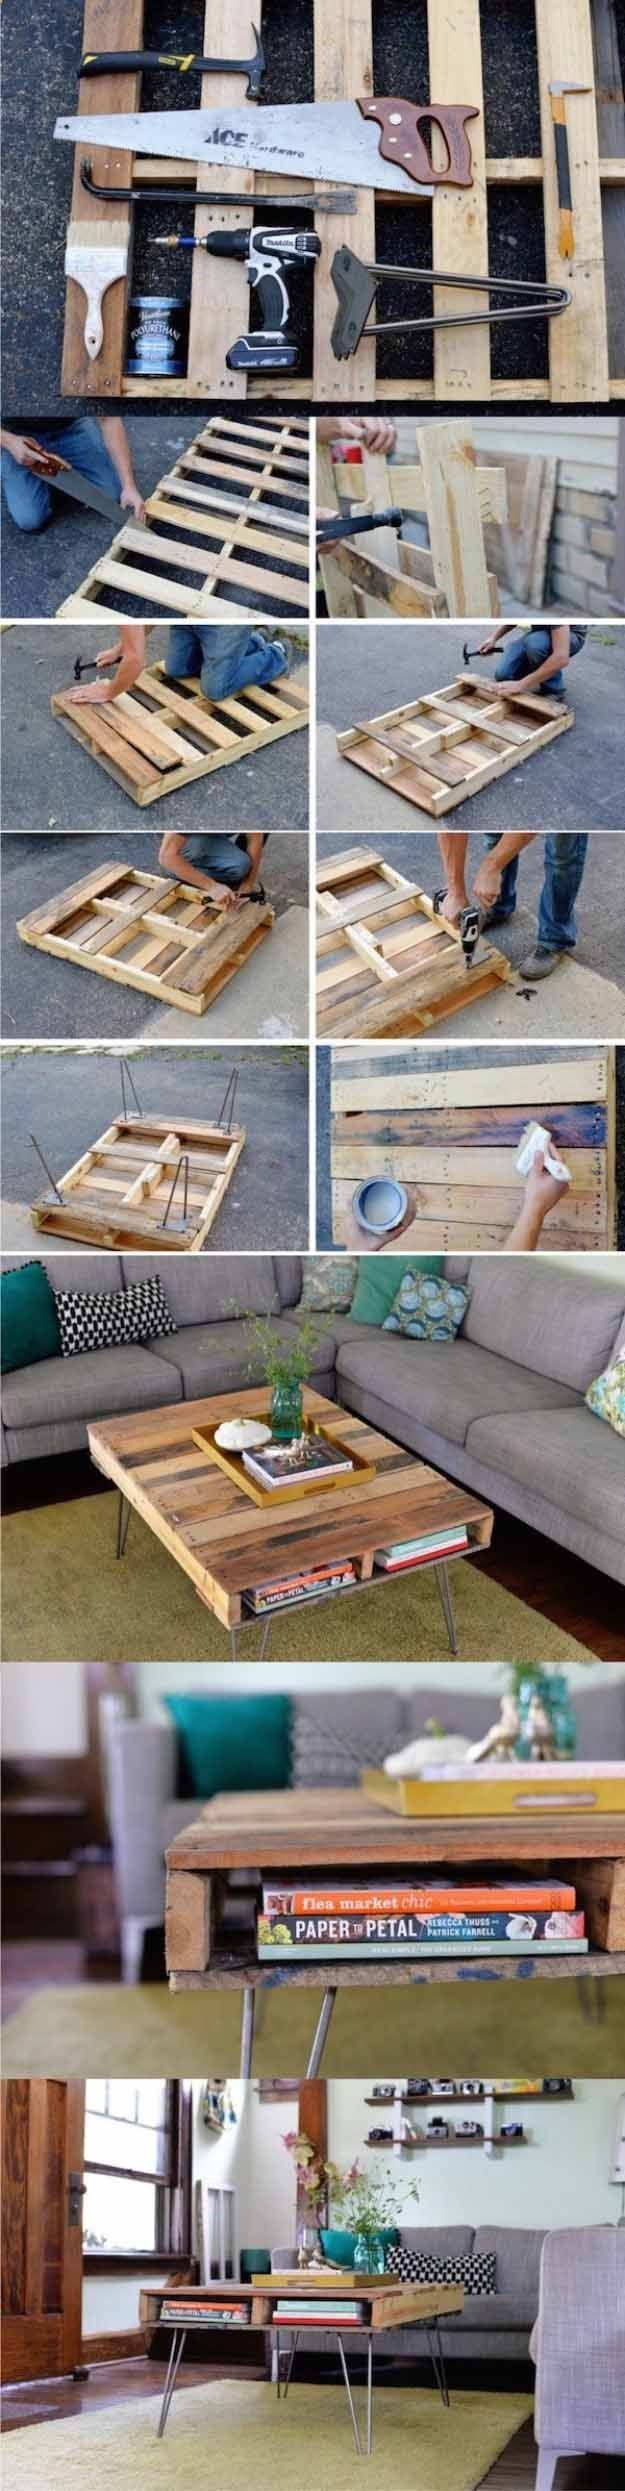 best crafts i think youull like images on pinterest creative